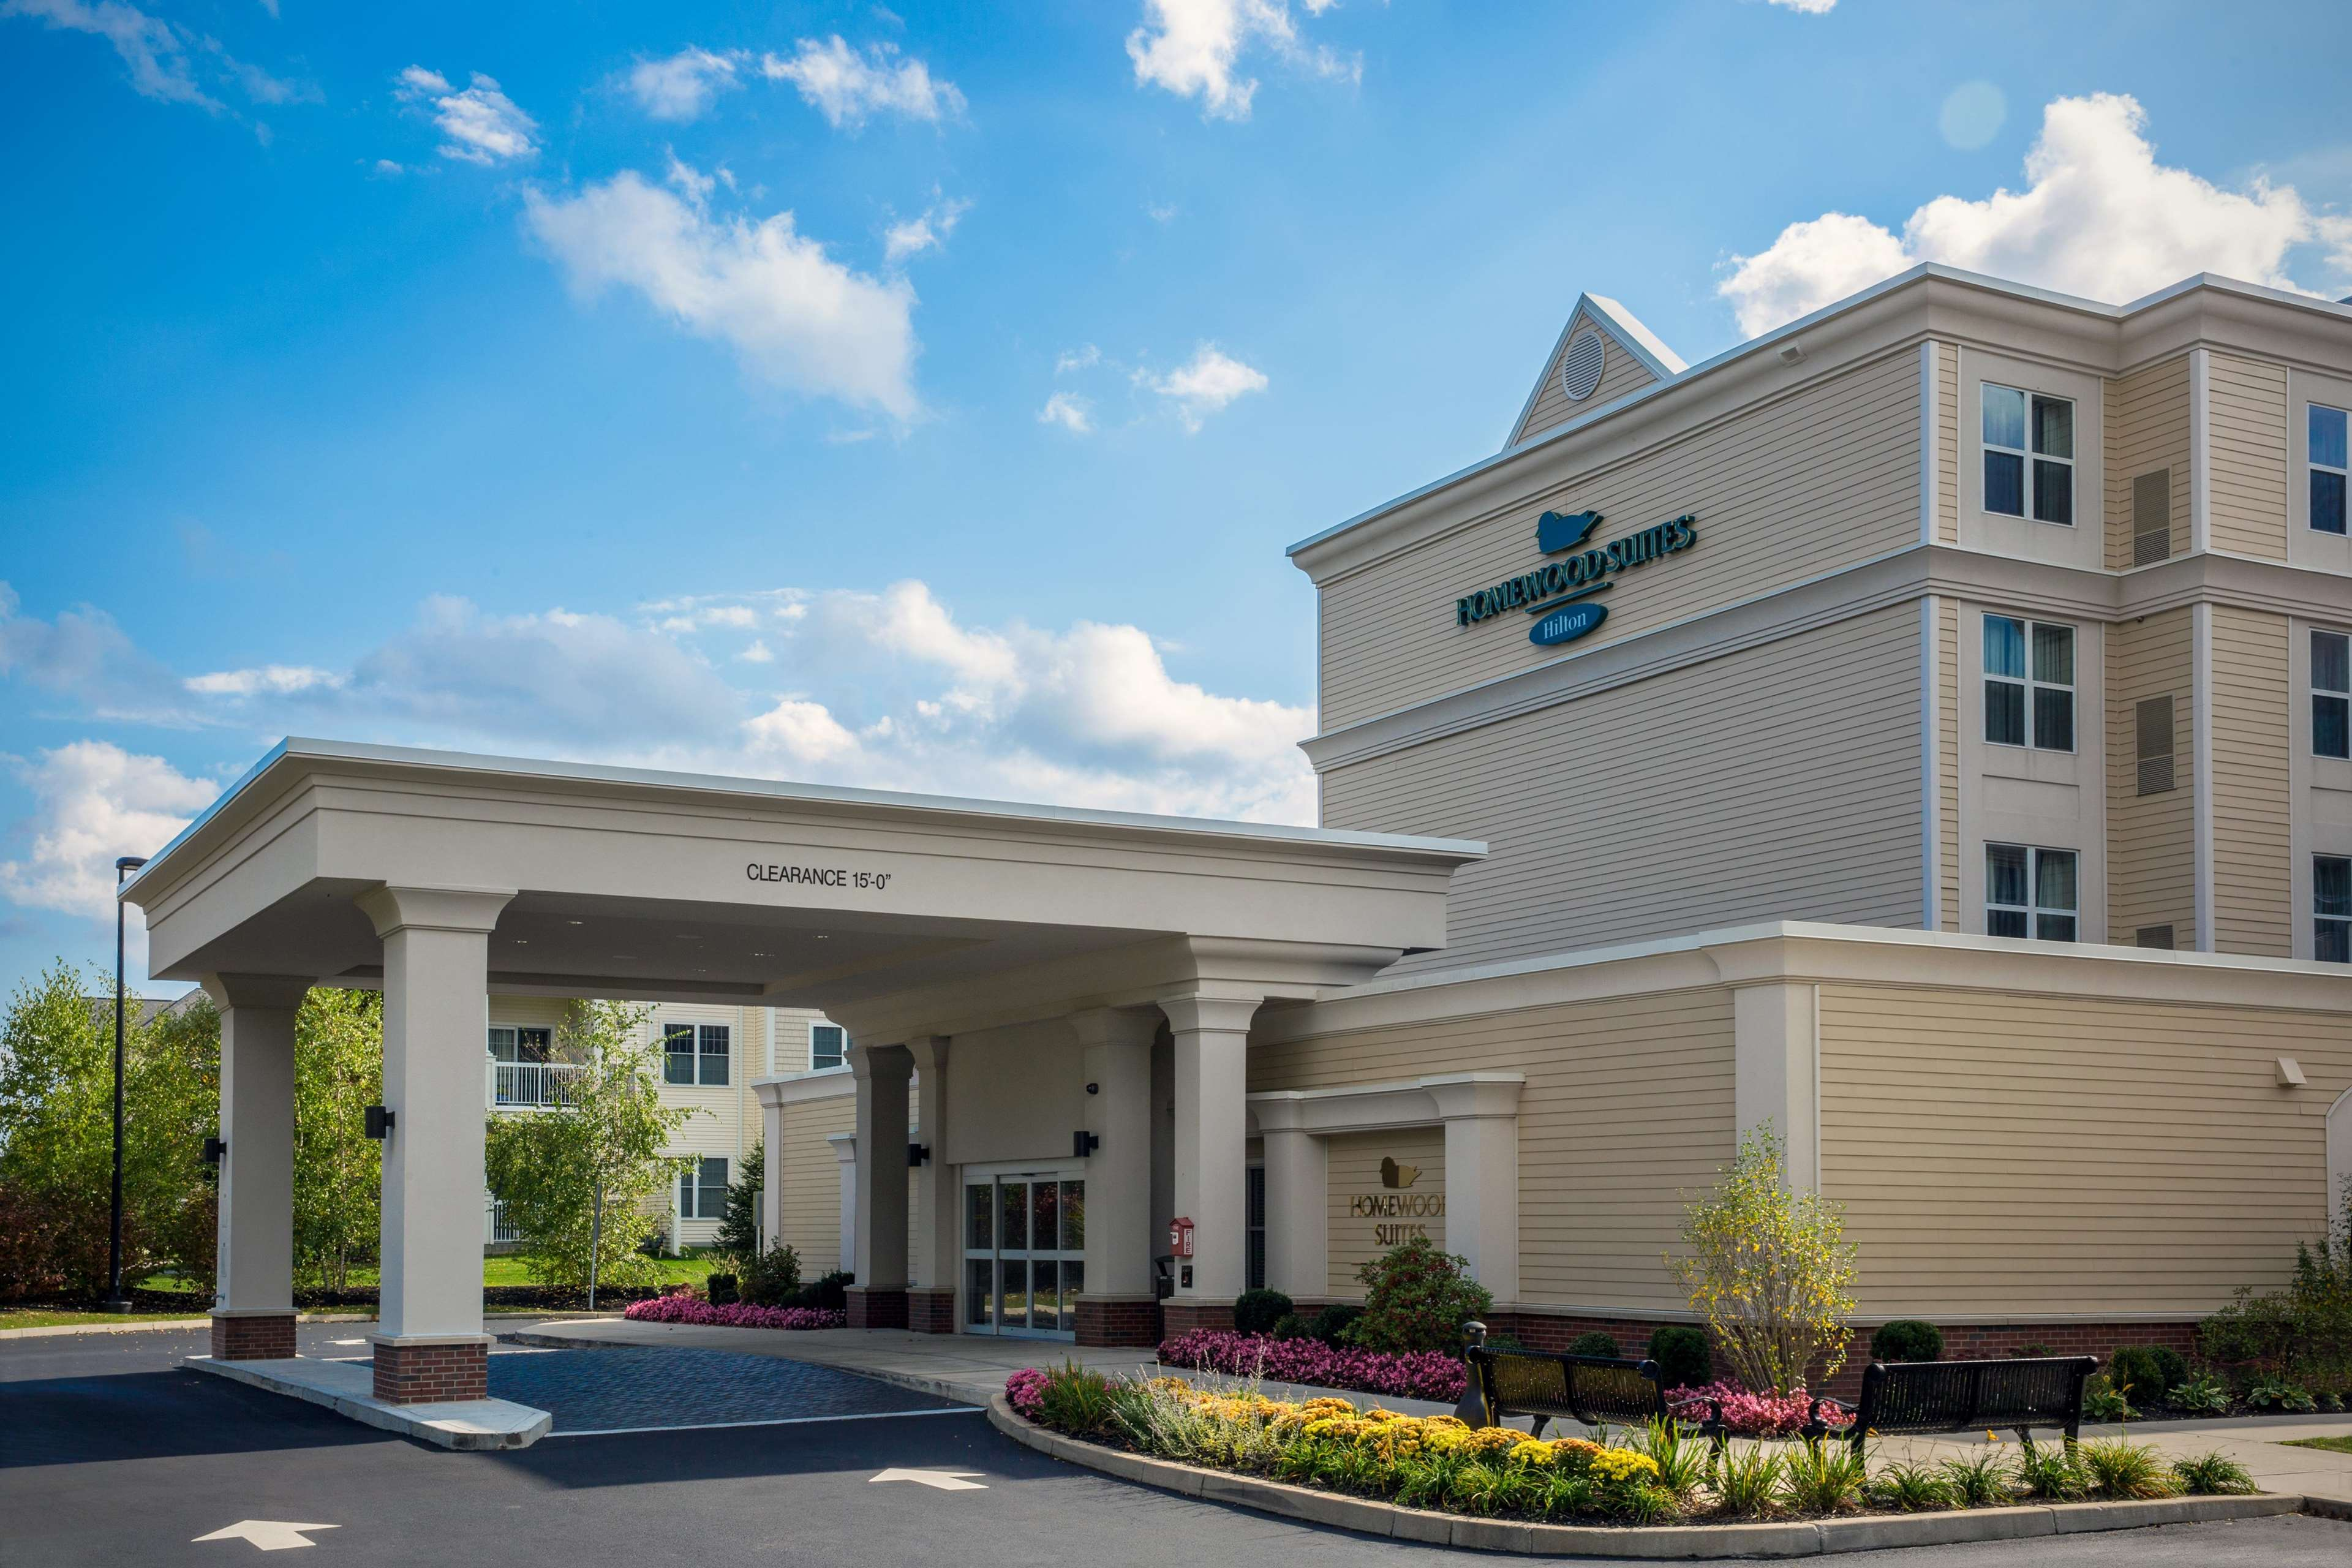 Homewood Suites by Hilton Boston/Canton, MA image 0